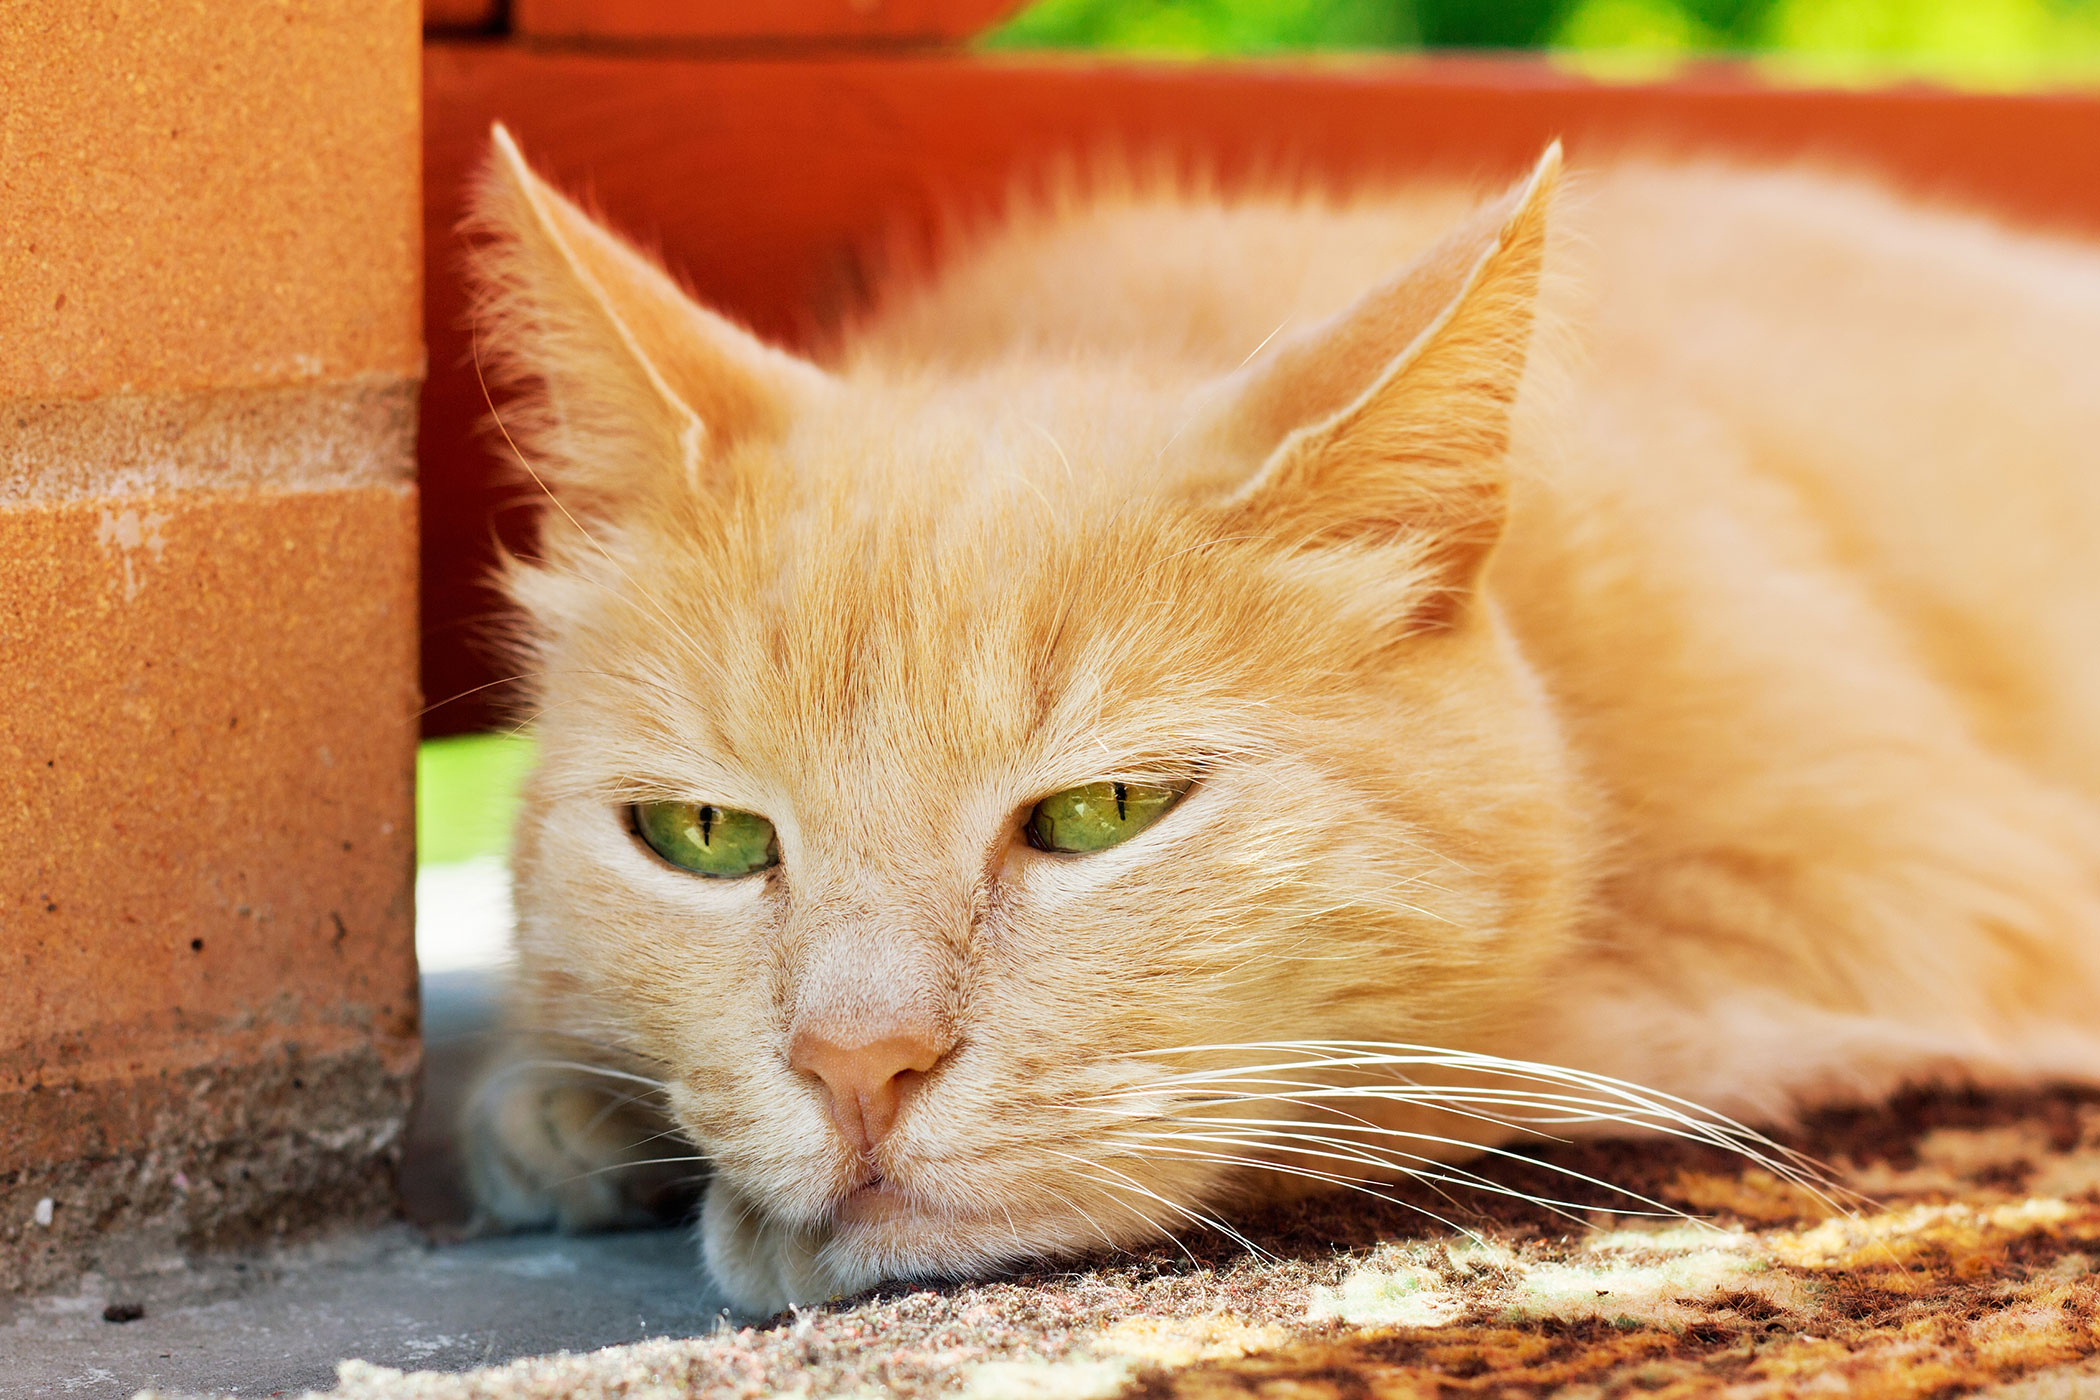 Blood Thickening in Cats